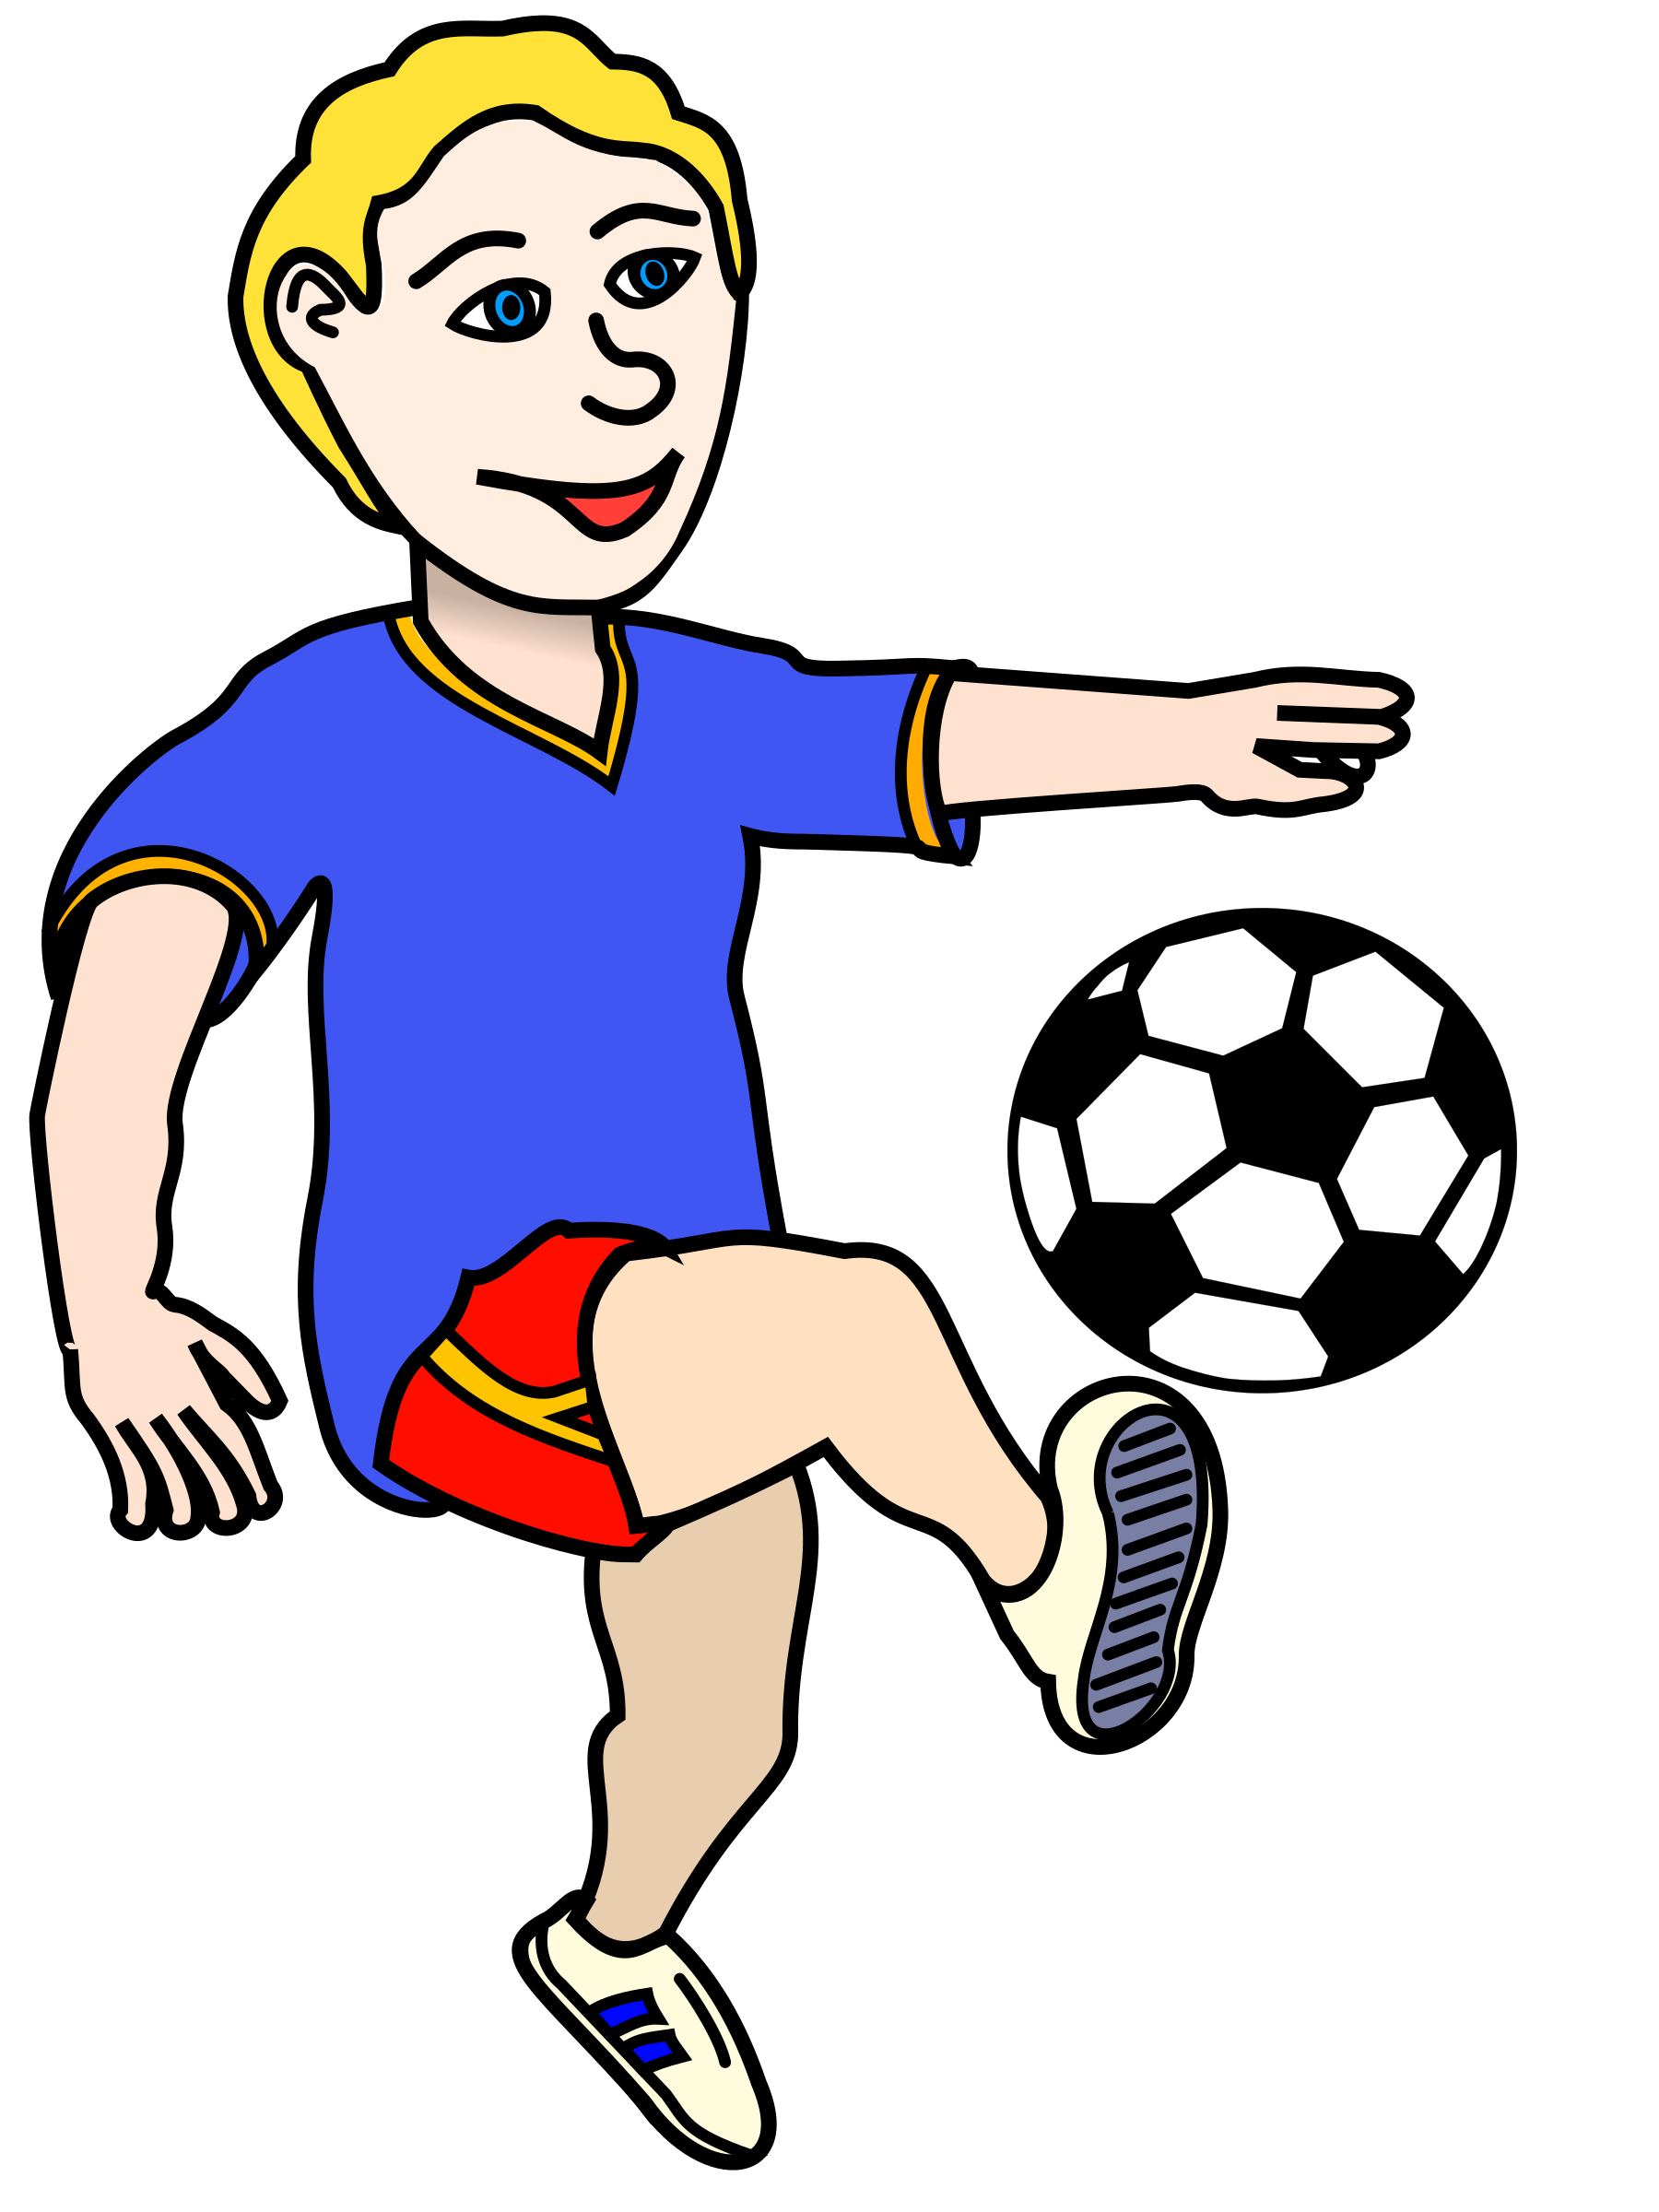 Football palyer clipart image library stock Soccer Player Clipart at GetDrawings.com | Free for personal use ... image library stock